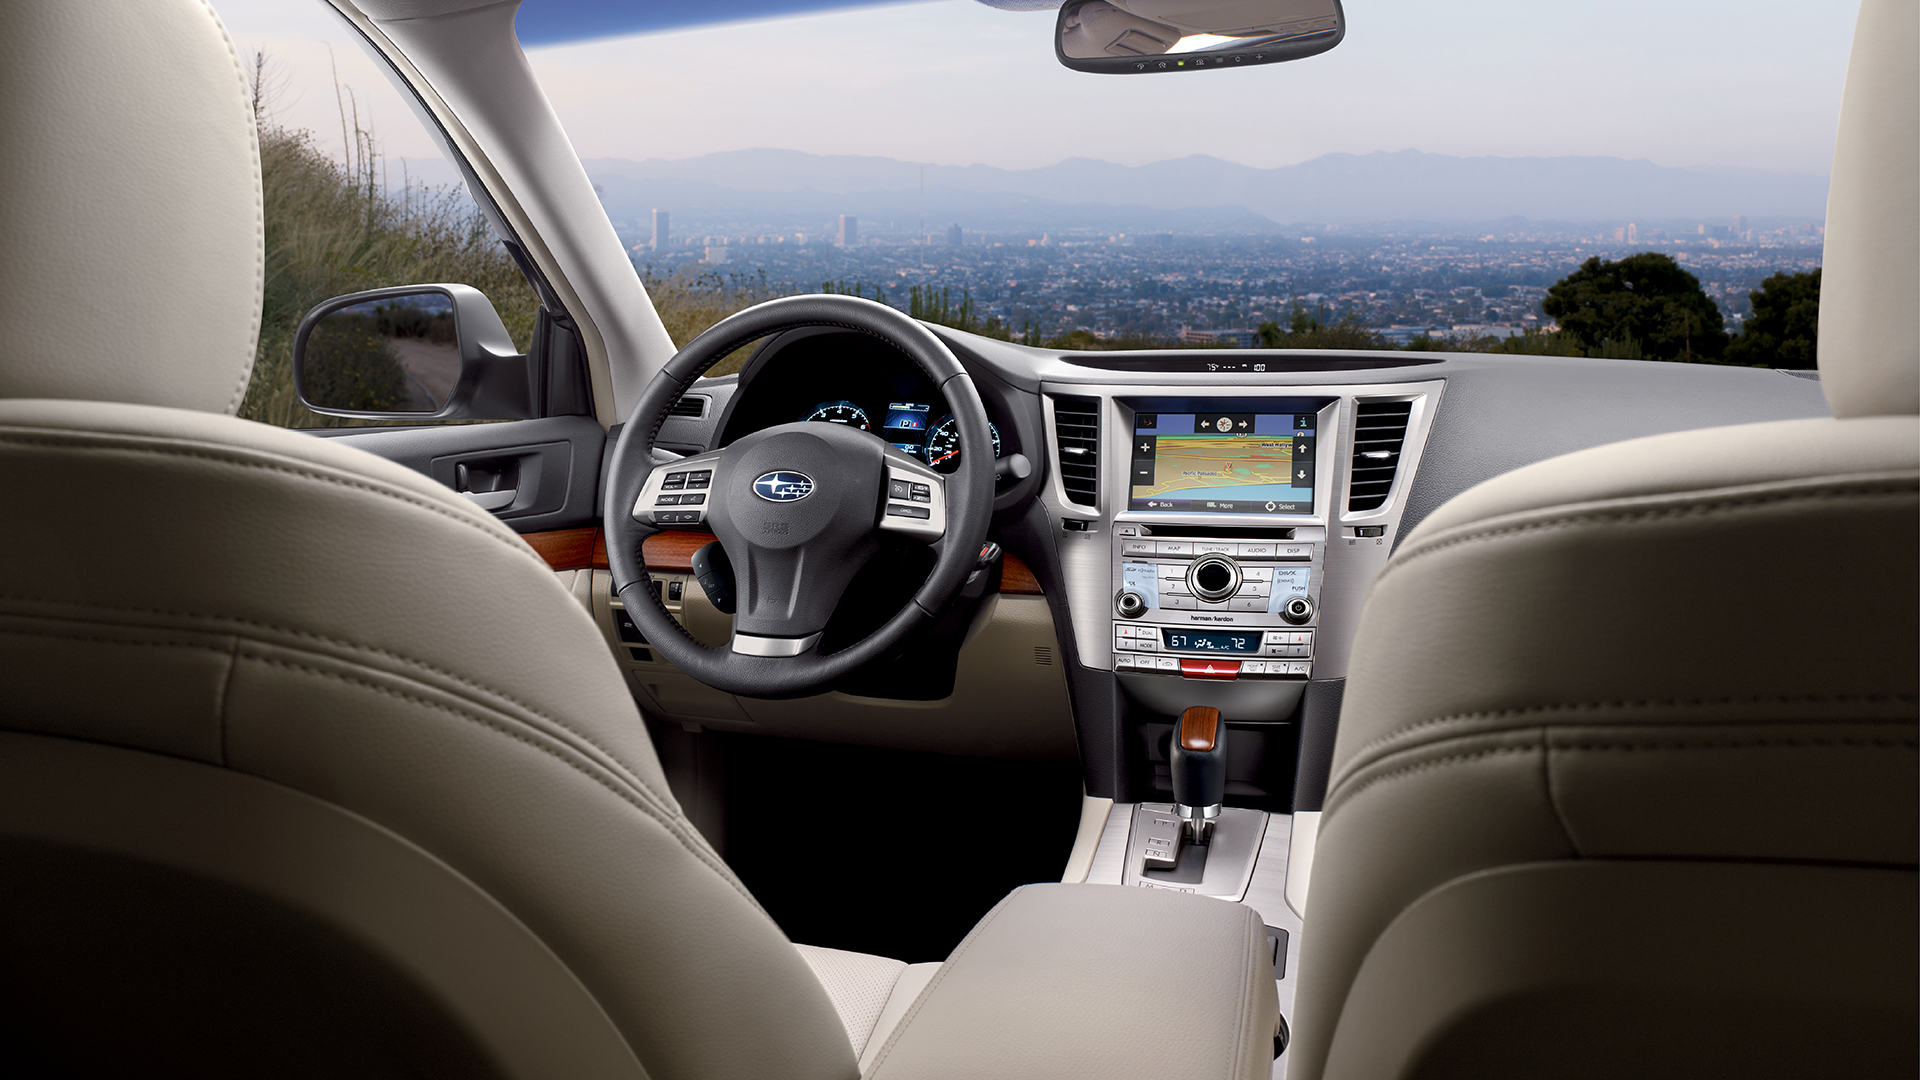 2014 subaru outback information and photos zombiedrive 2014 subaru outback 21 subaru outback 21 vanachro Choice Image